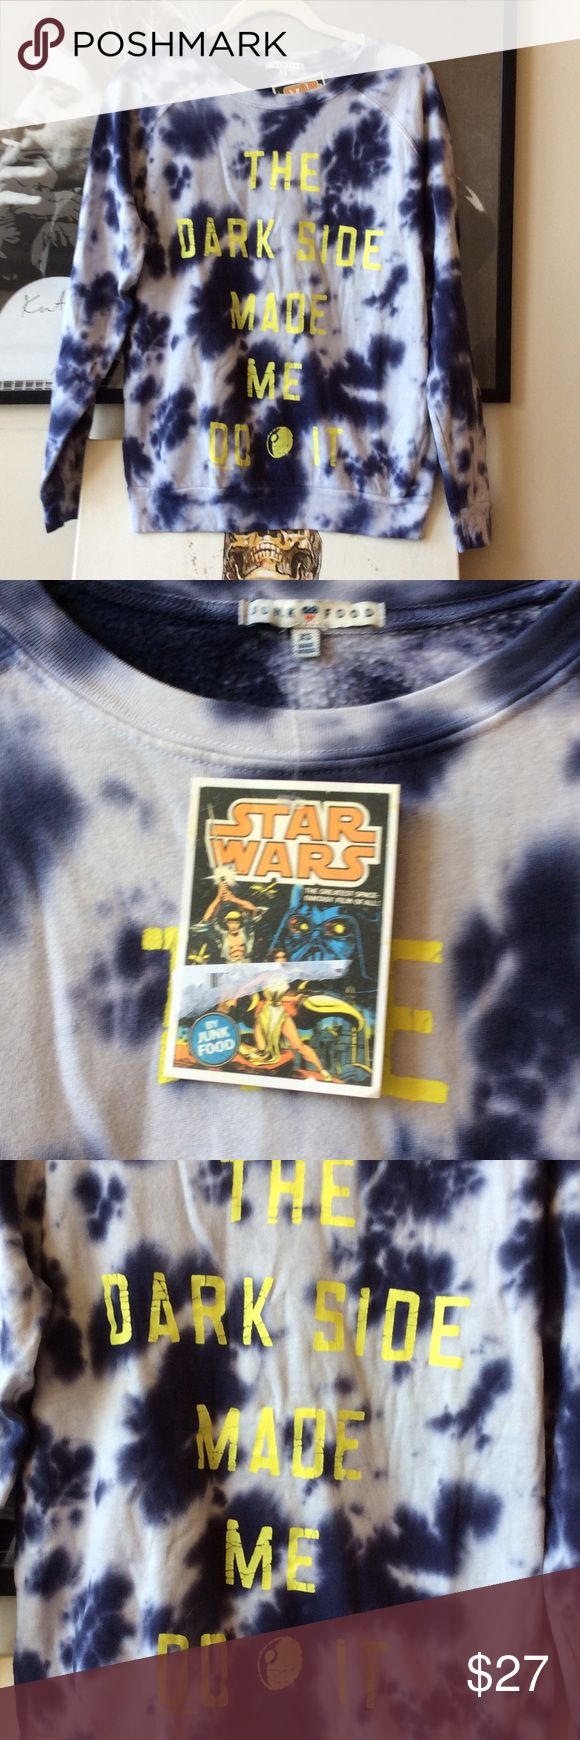 NWT Junk Food Star Wars Sweatshirt ✨ NWT Tye dye Junk Food clothing Star Wars Sweatshirt. Length is 25 inches and when laid it is 20 inches across from armpit to armpit 🌟 Junk Food Tops Sweatshirts & Hoodies